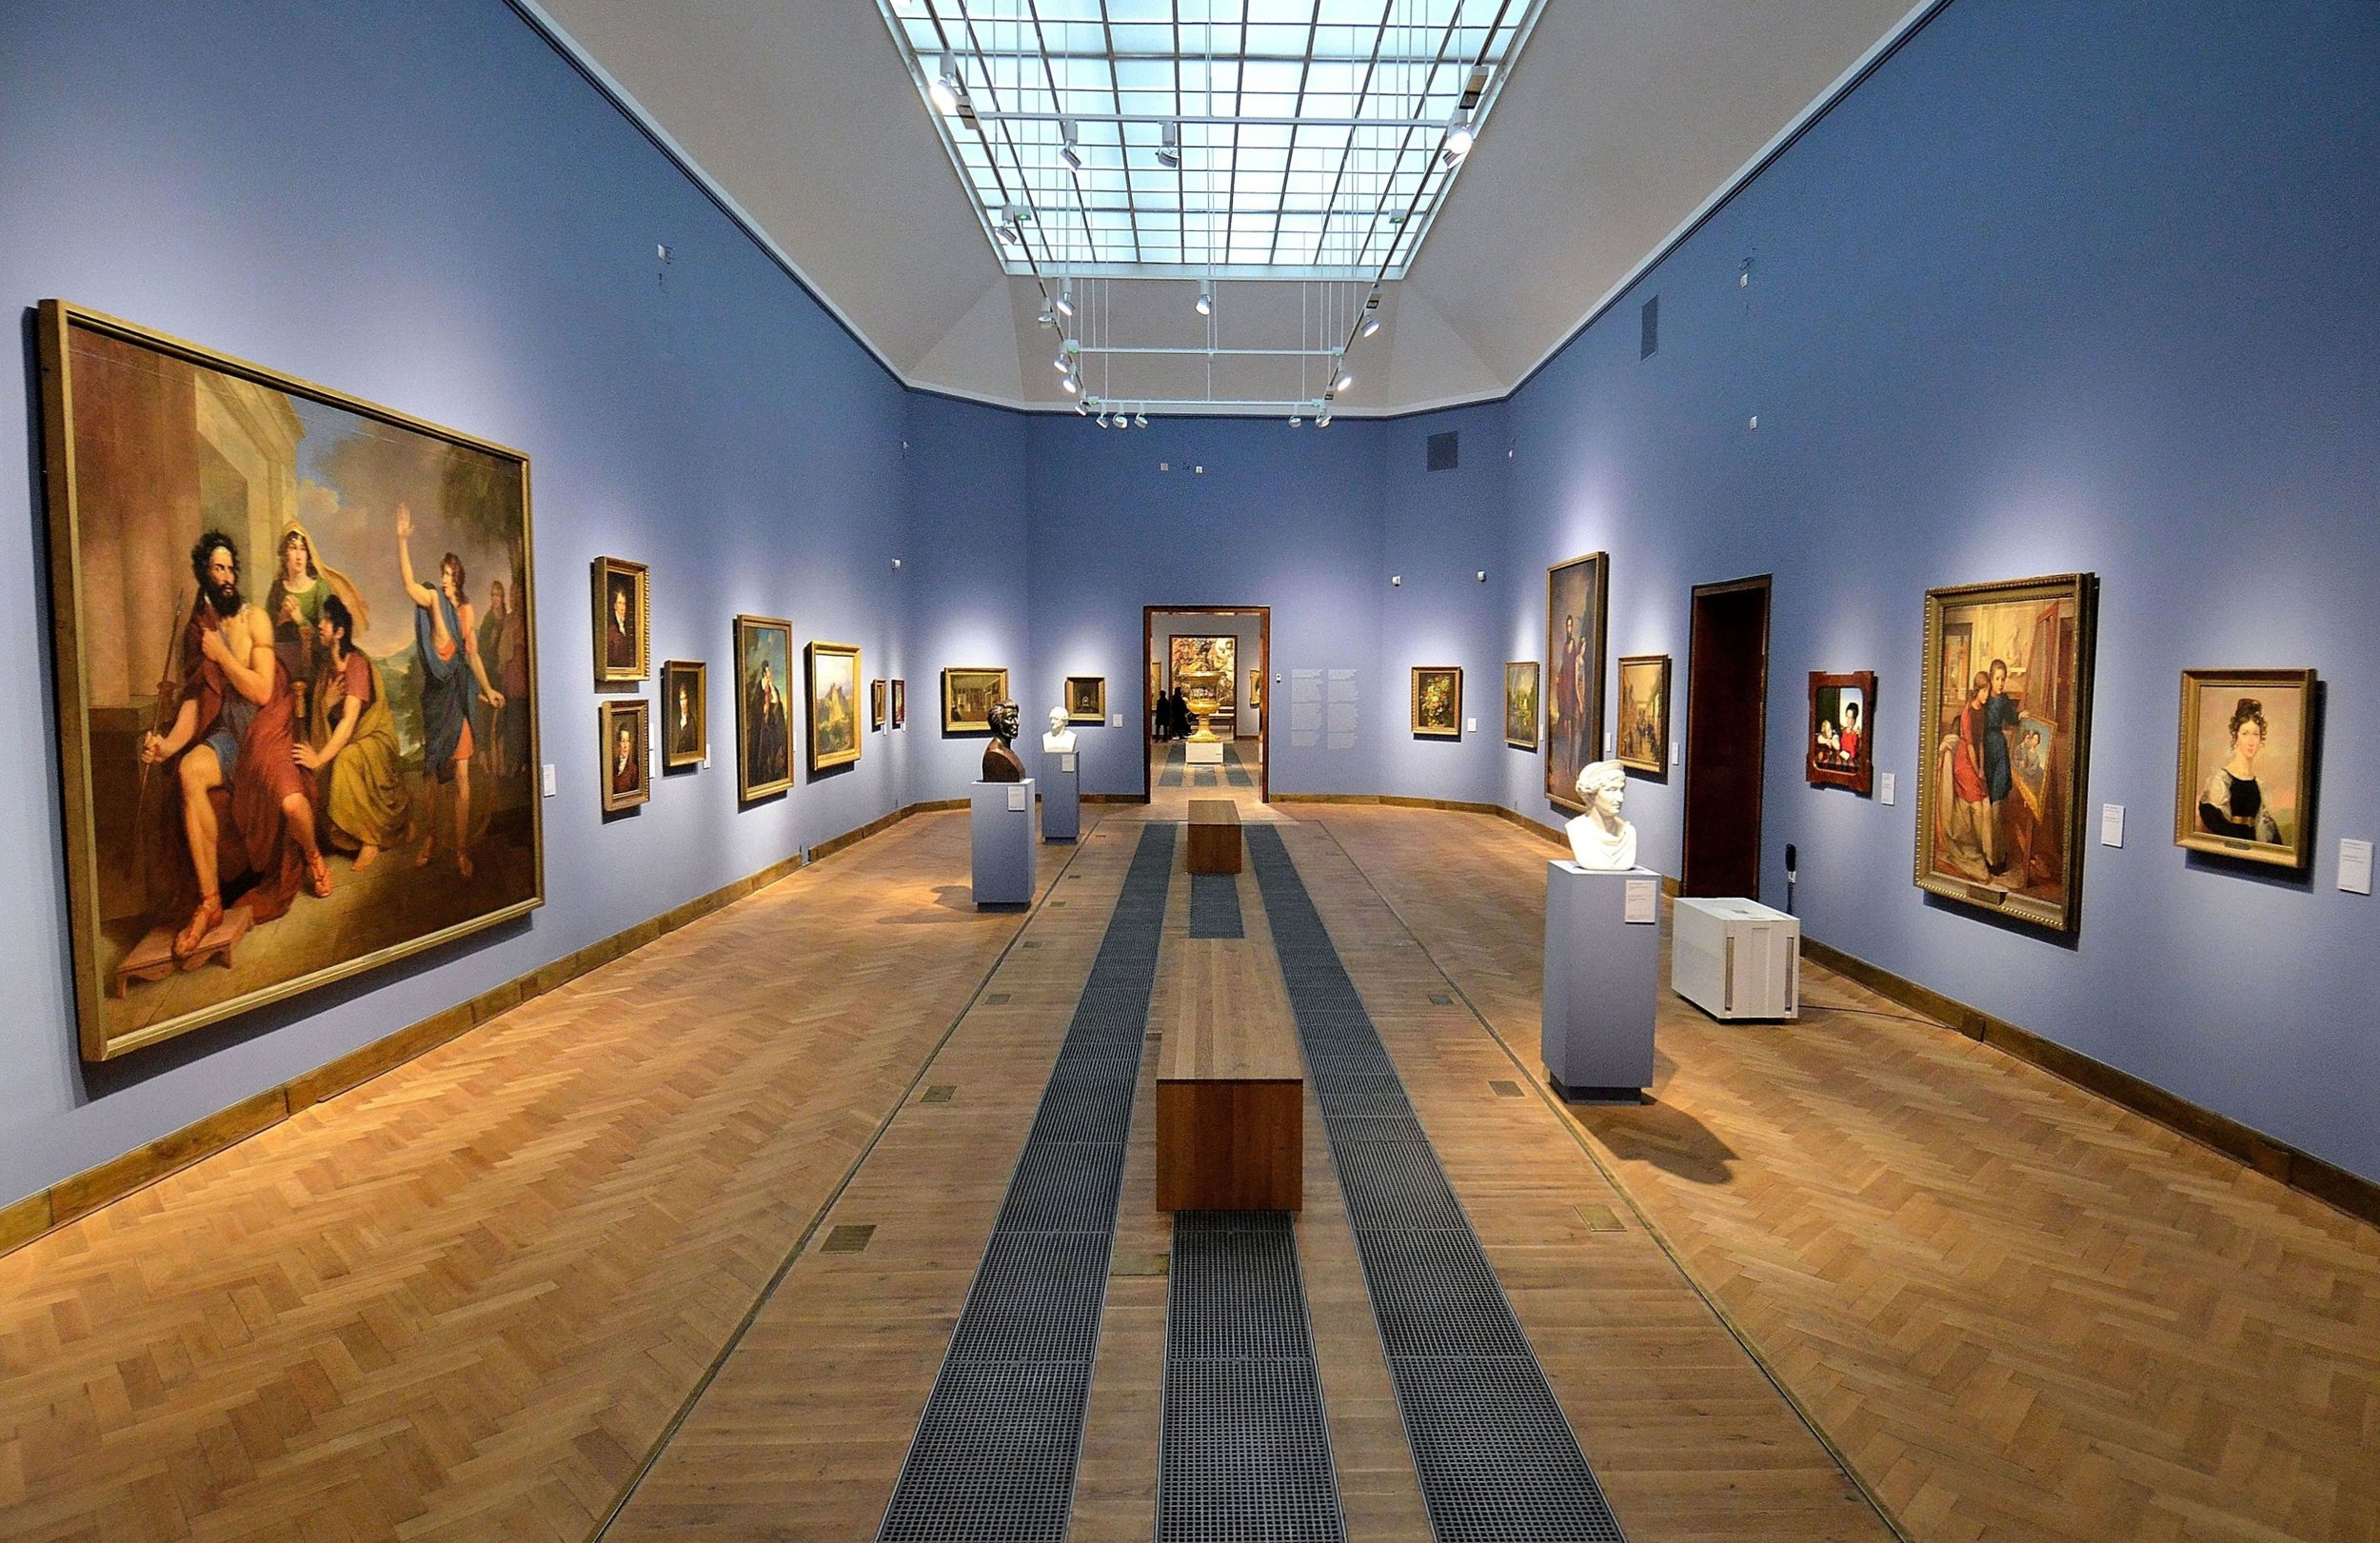 Accent lighting in museums (Narodowe Warsaw) - Photograph wikipedia